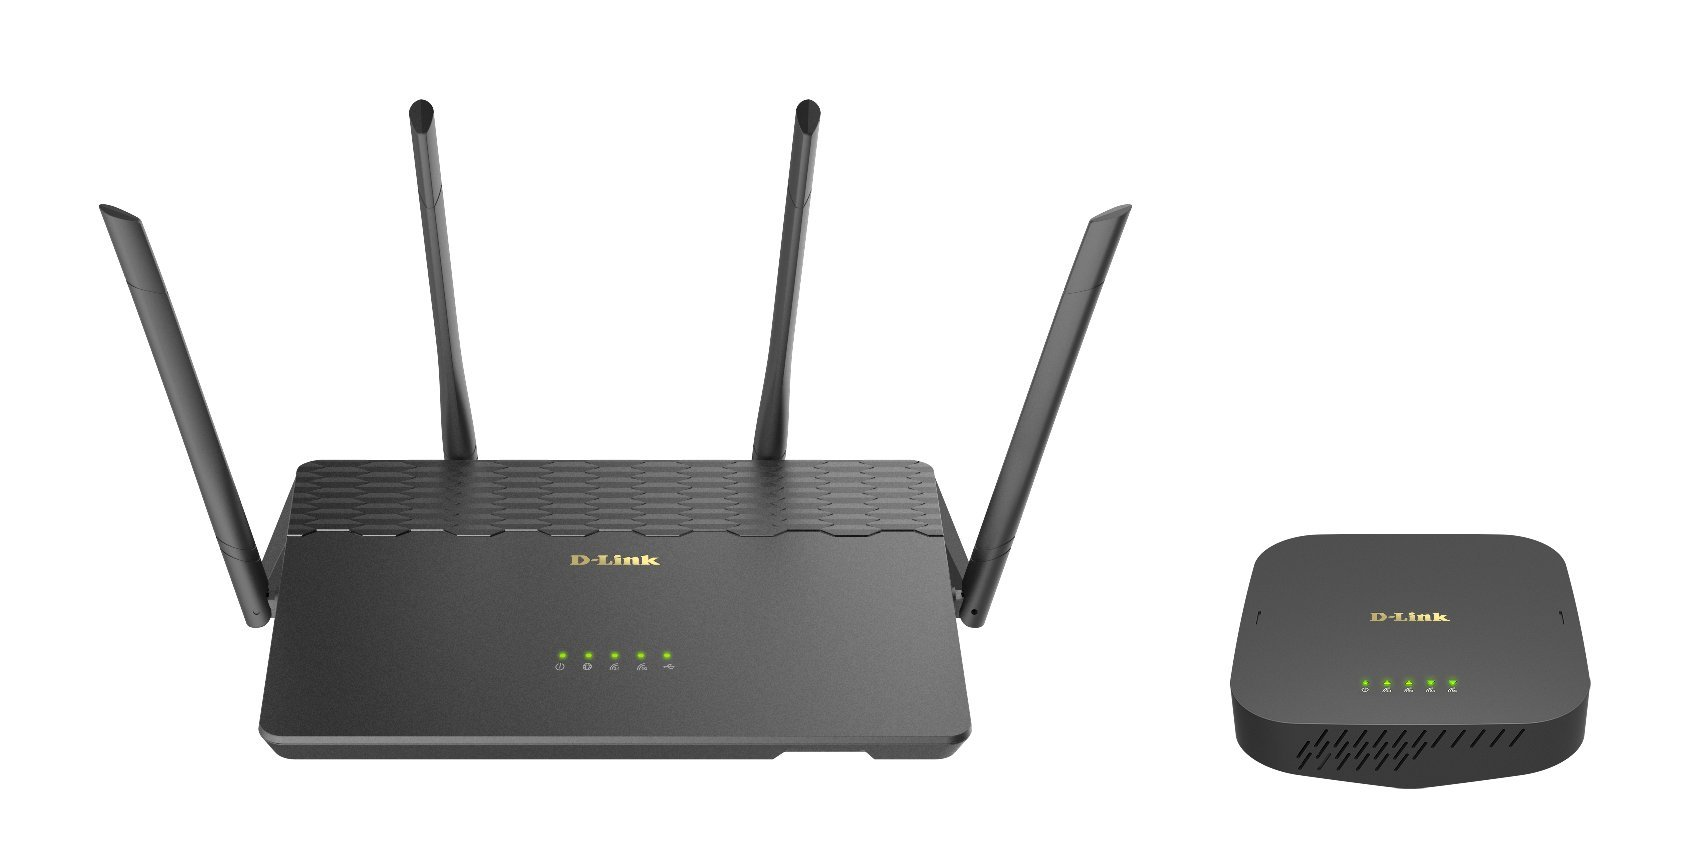 D-Link Covr AC3900 Whole Home Wi-Fi System - Coverage up to 6,000 sq. ft., Wi-Fi Router and Seamless Extender with MU-MIMO (COVR-3902-US)